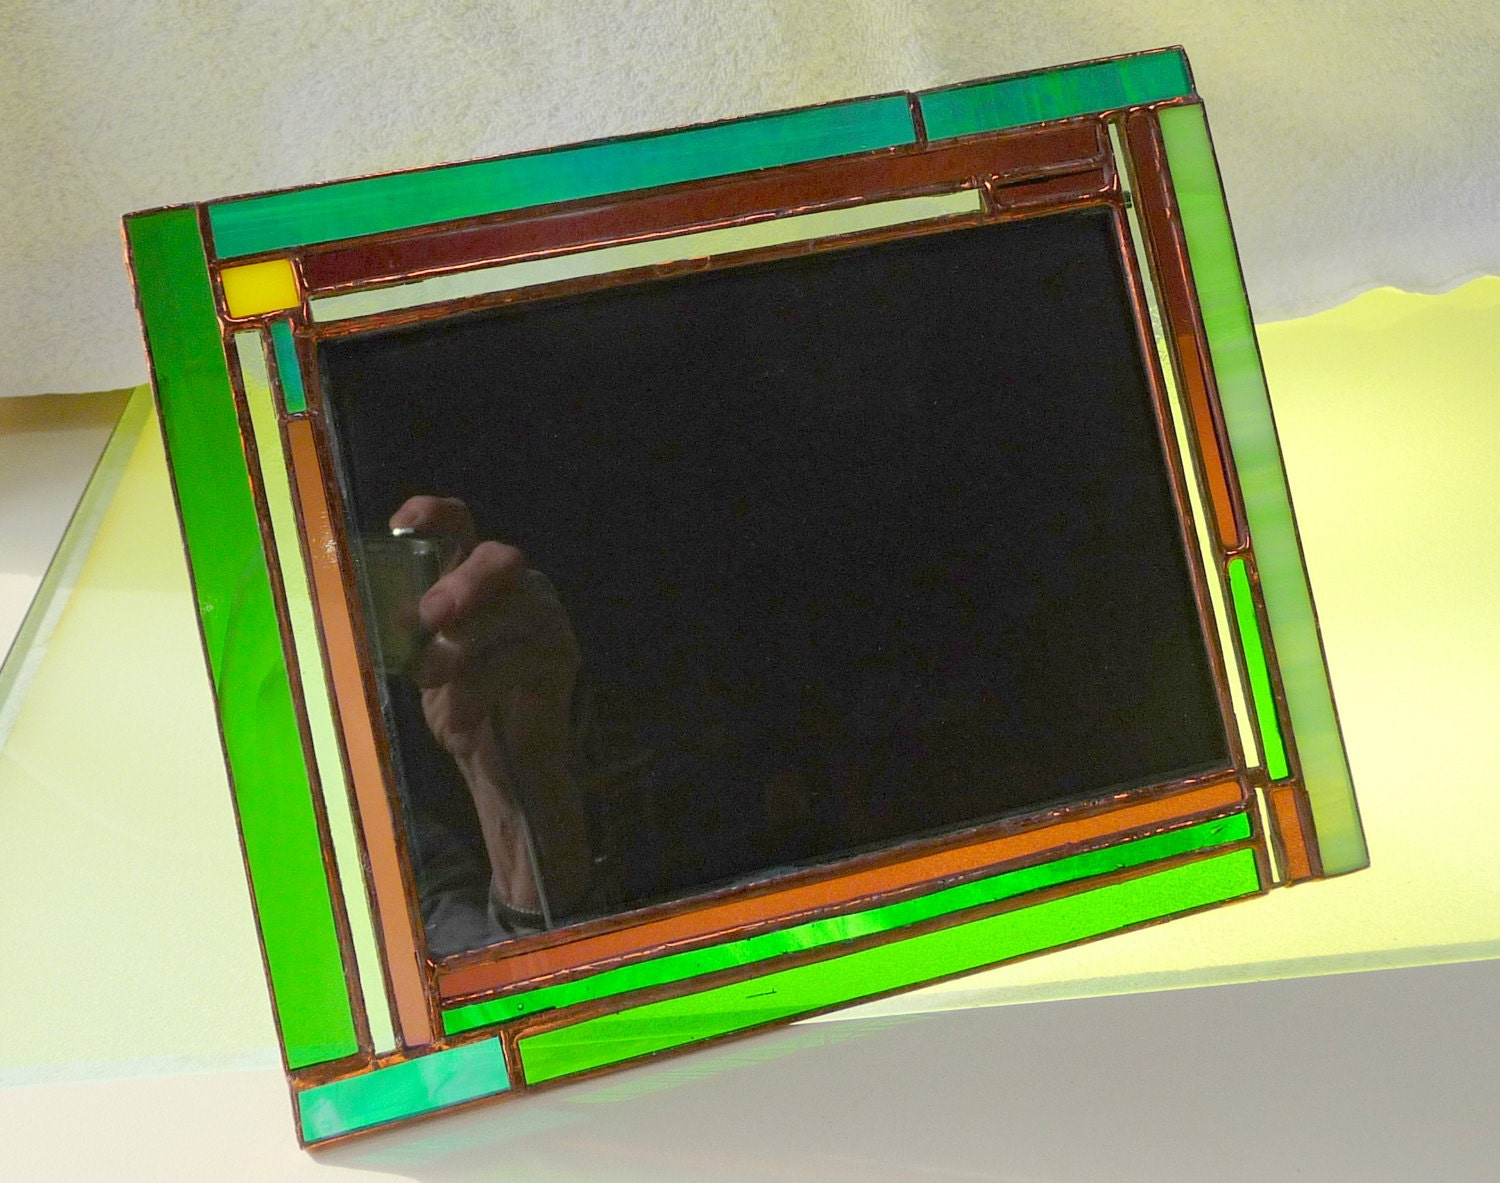 Stained glass picture frame greens purple picture frame 5 x 7 gallery photo gallery photo gallery photo gallery photo jeuxipadfo Images